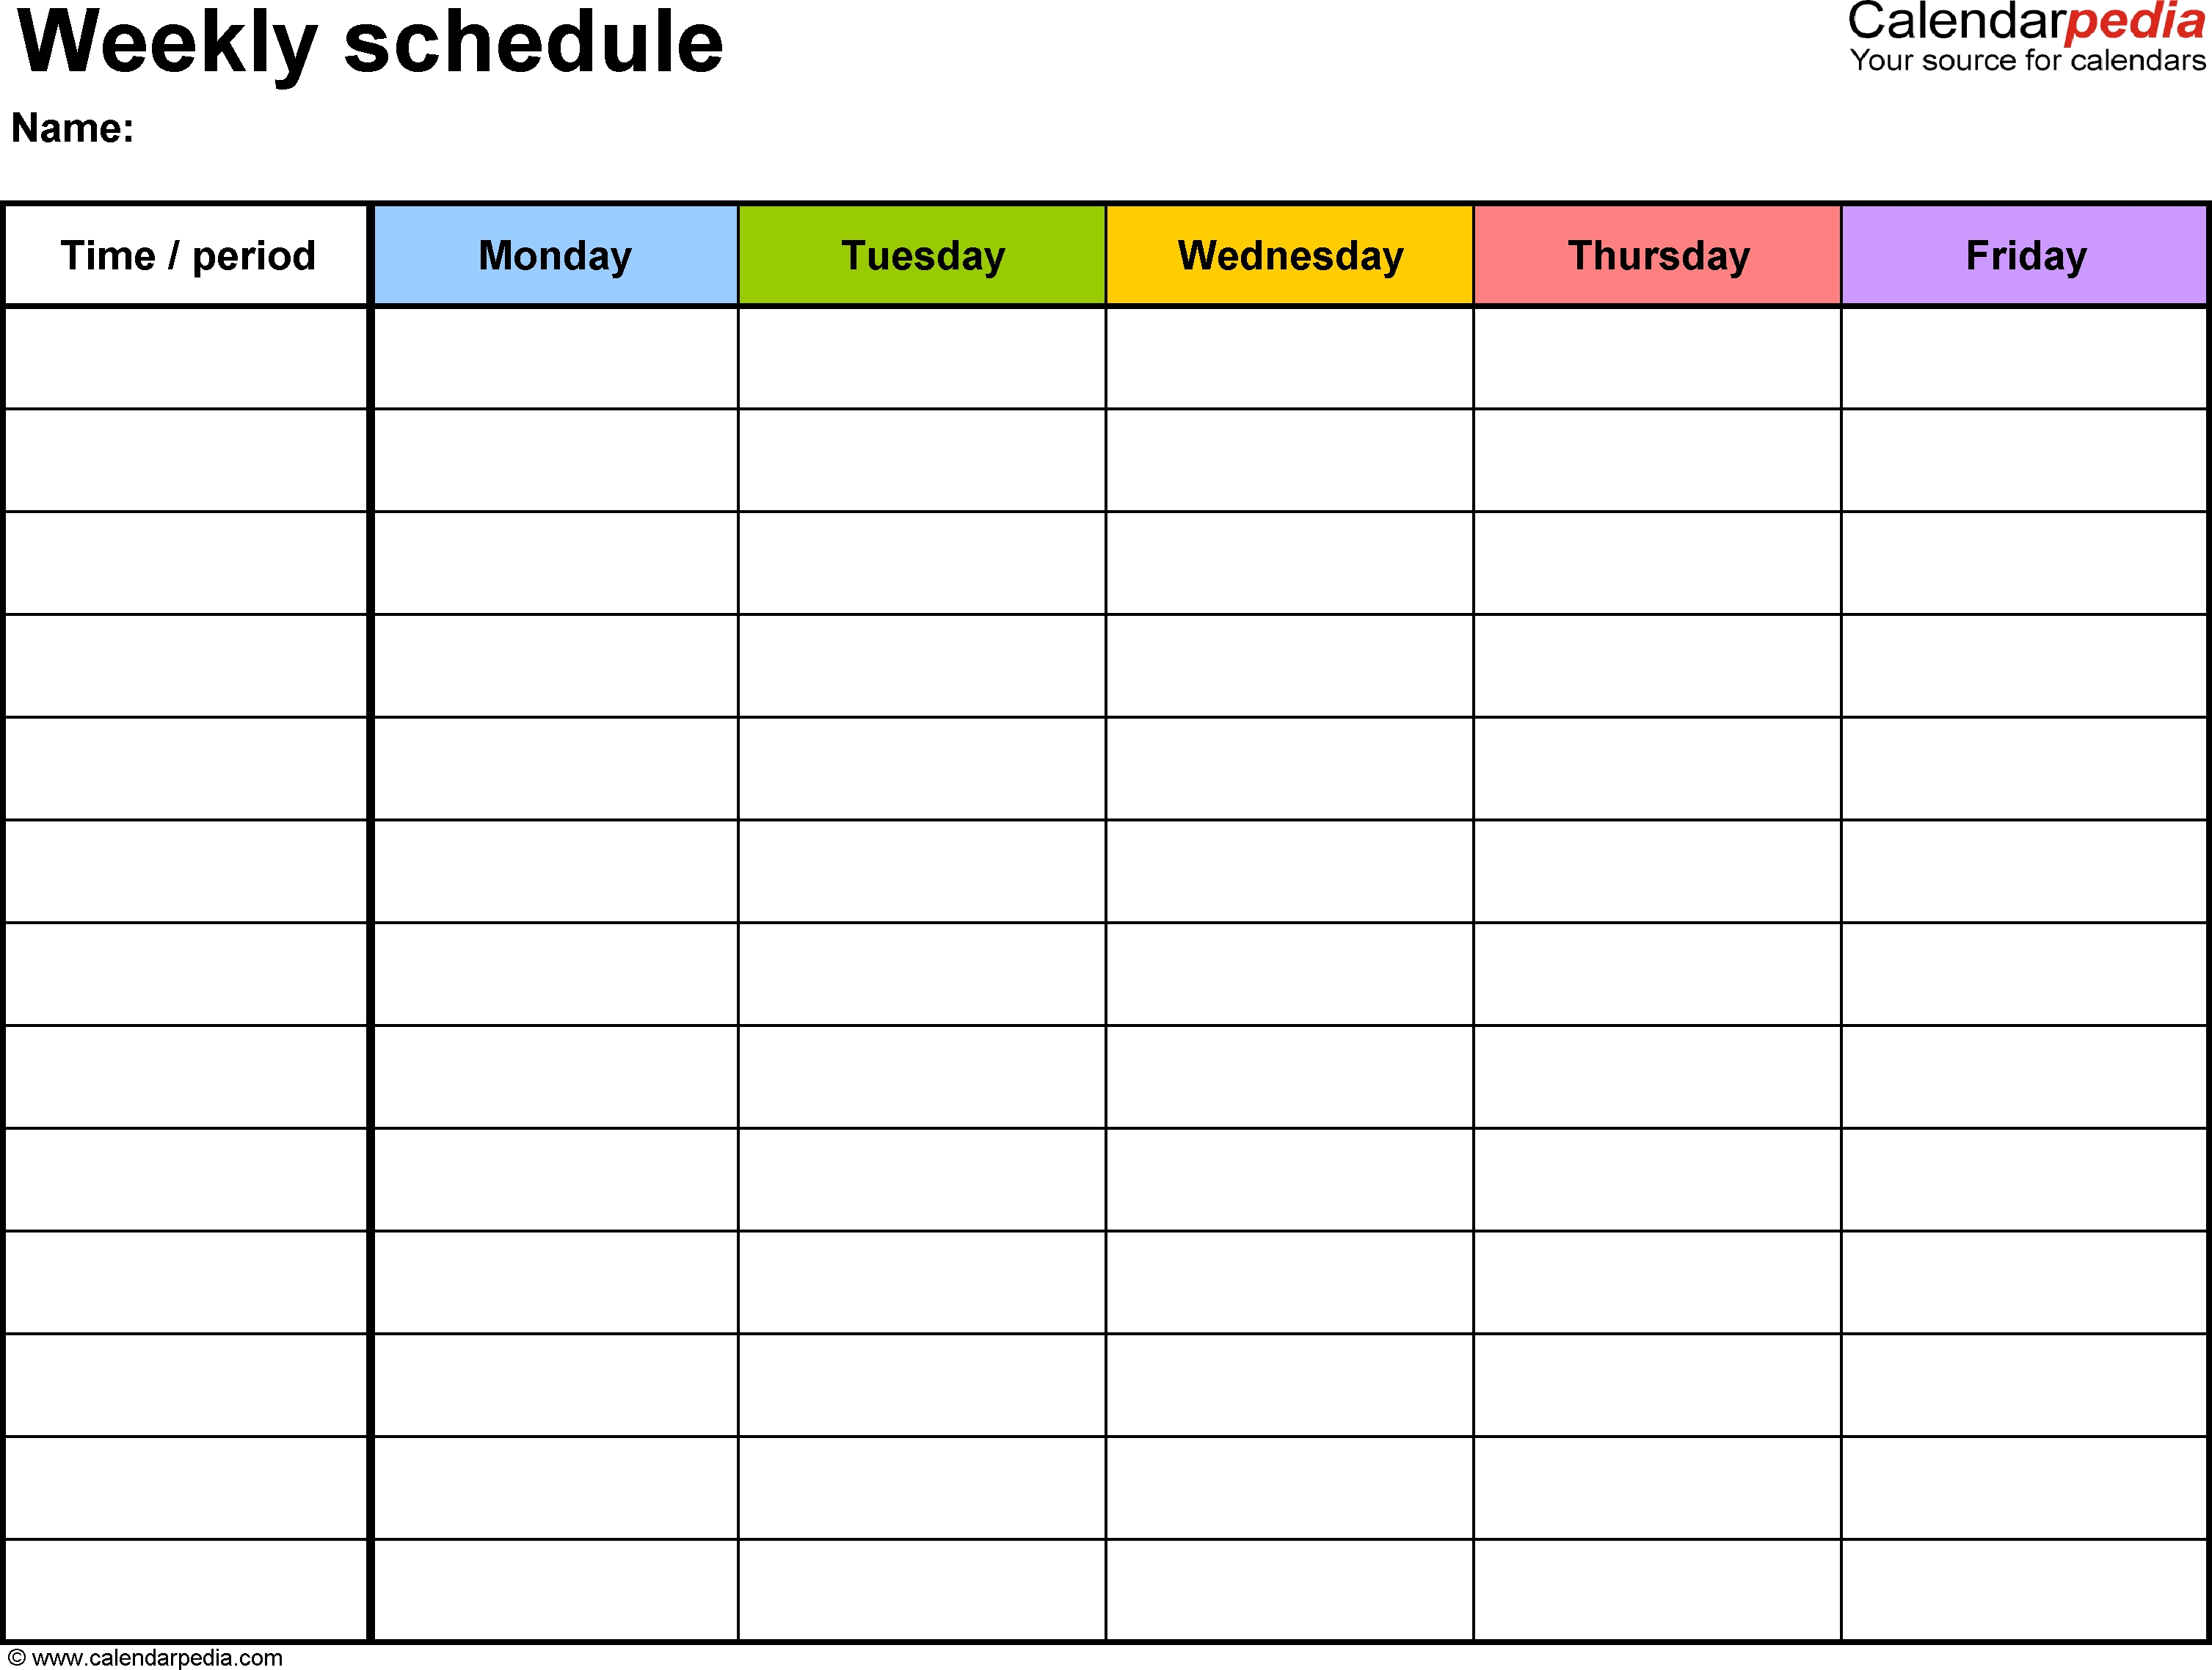 Free Weekly Schedule Templates For Excel - 18 Templates intended for One Week Daily Calendar Printable